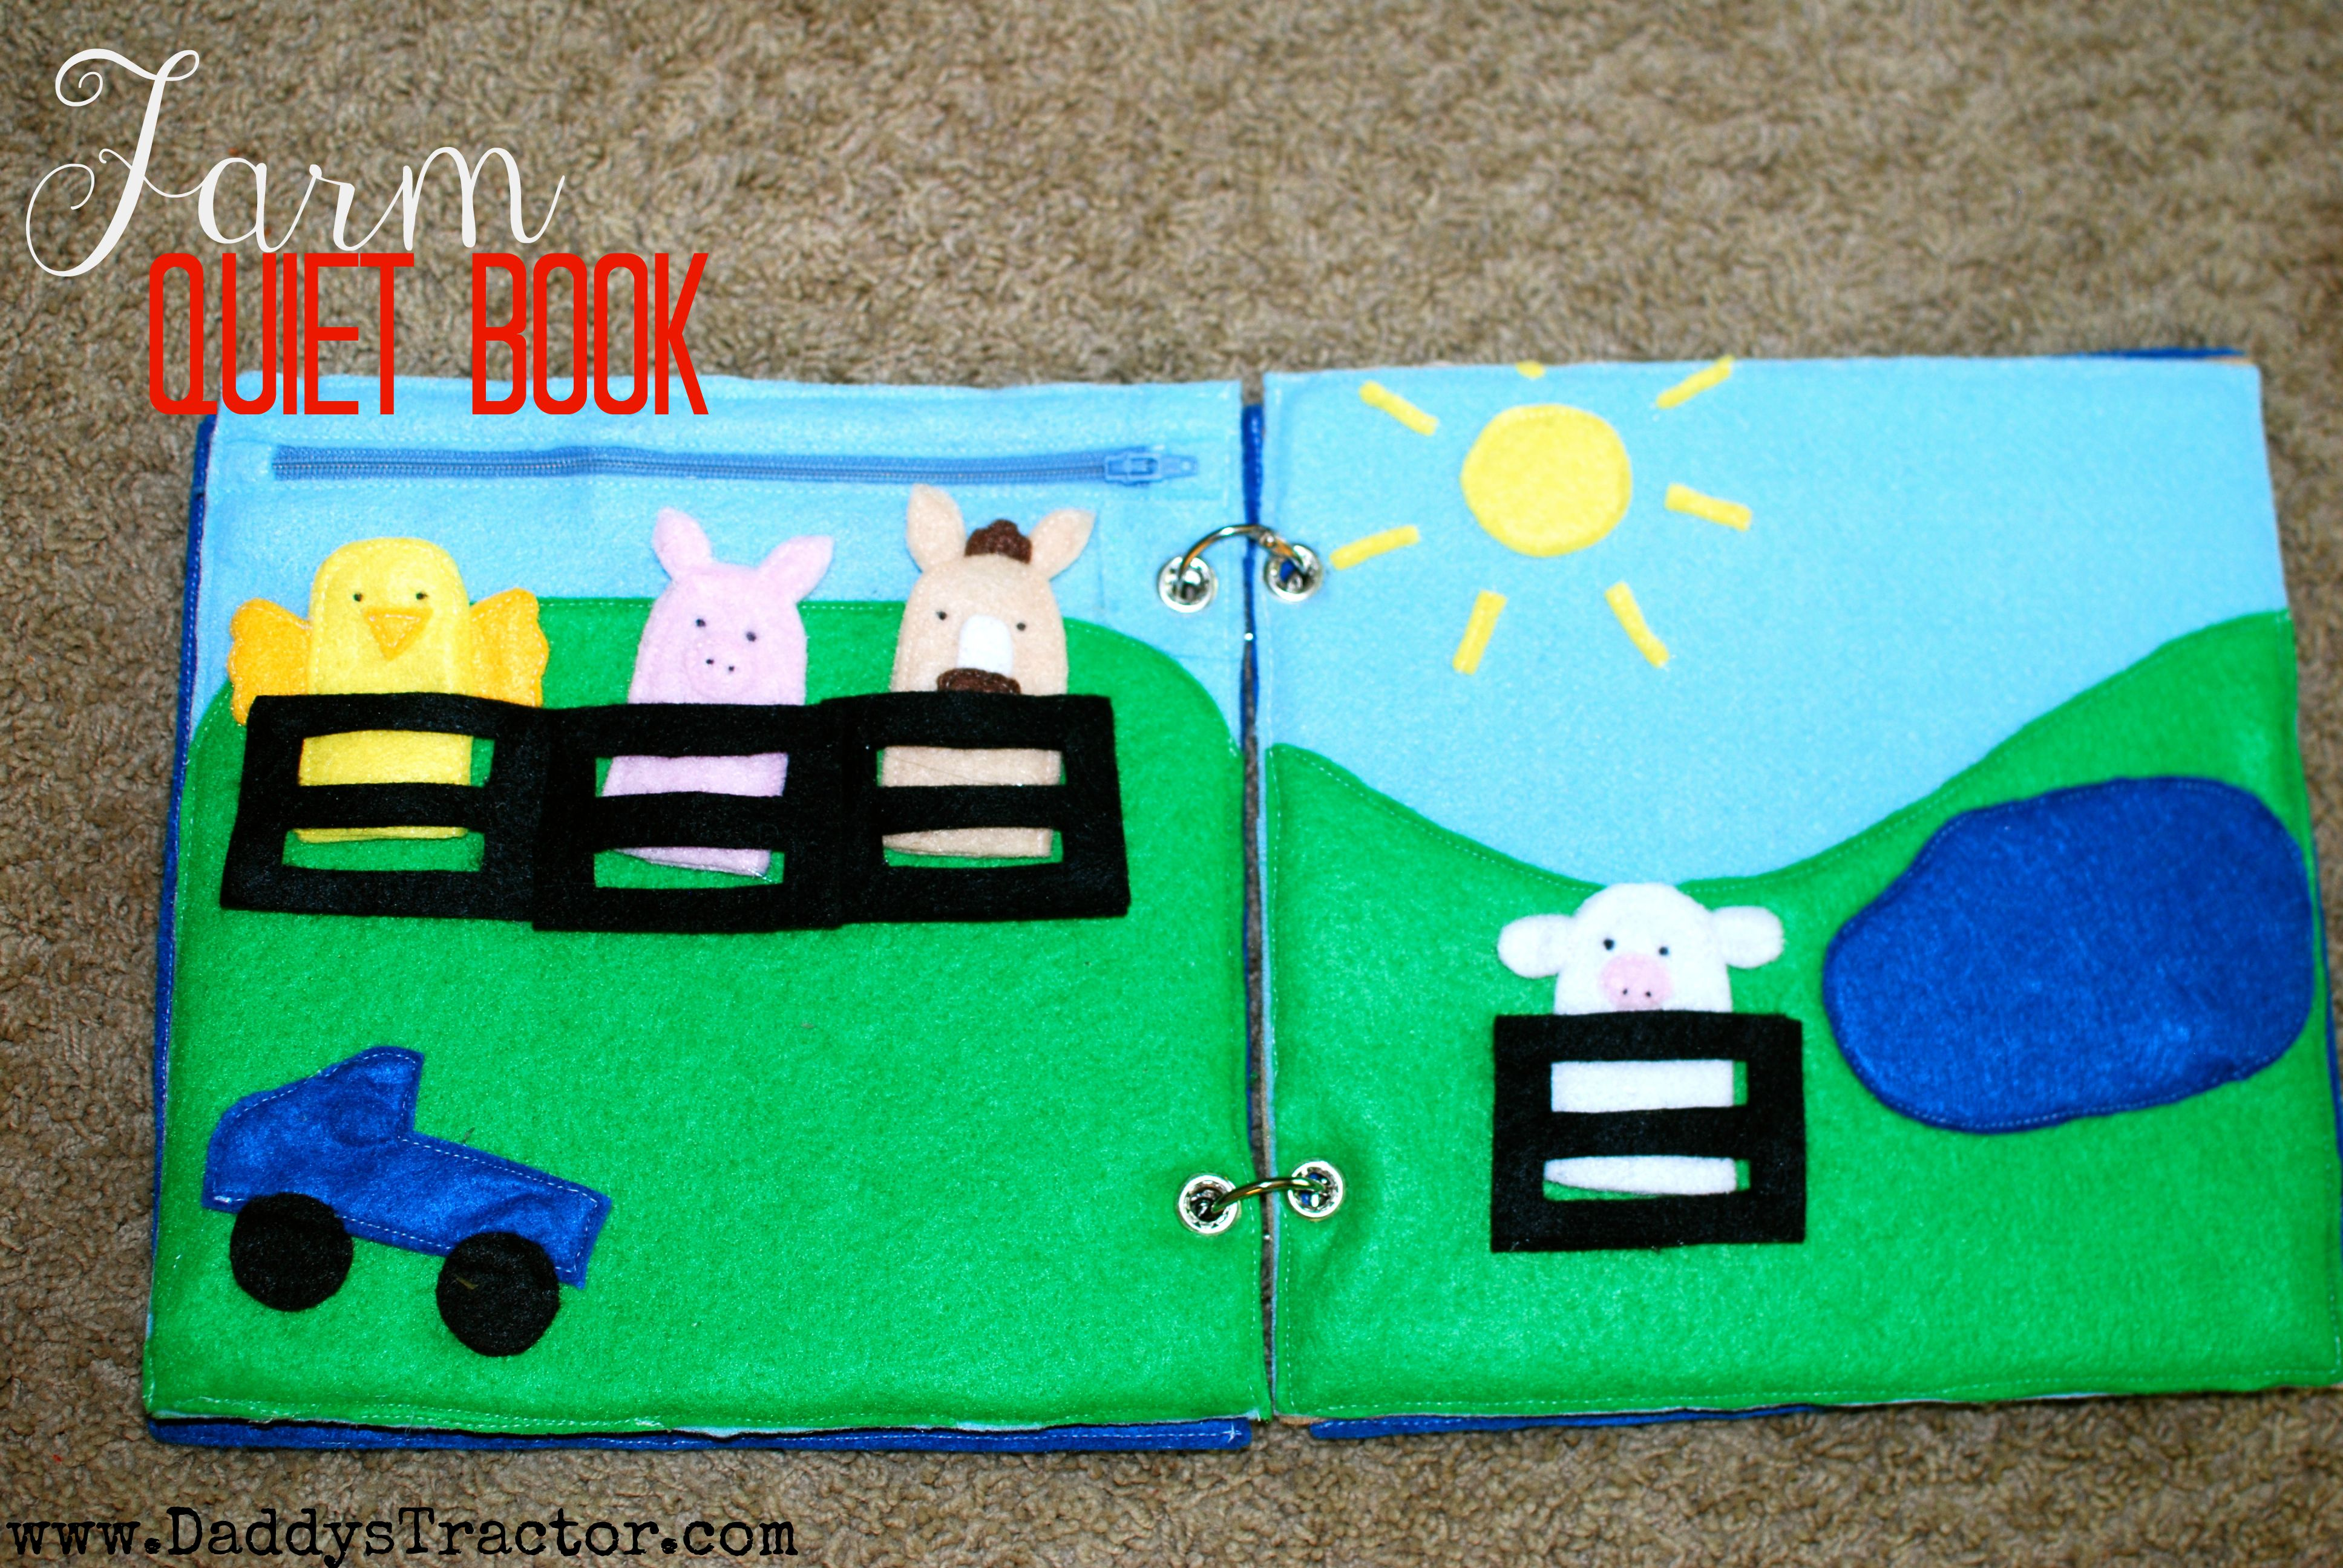 On the Farm Quiet Book | Daddy's Tractor